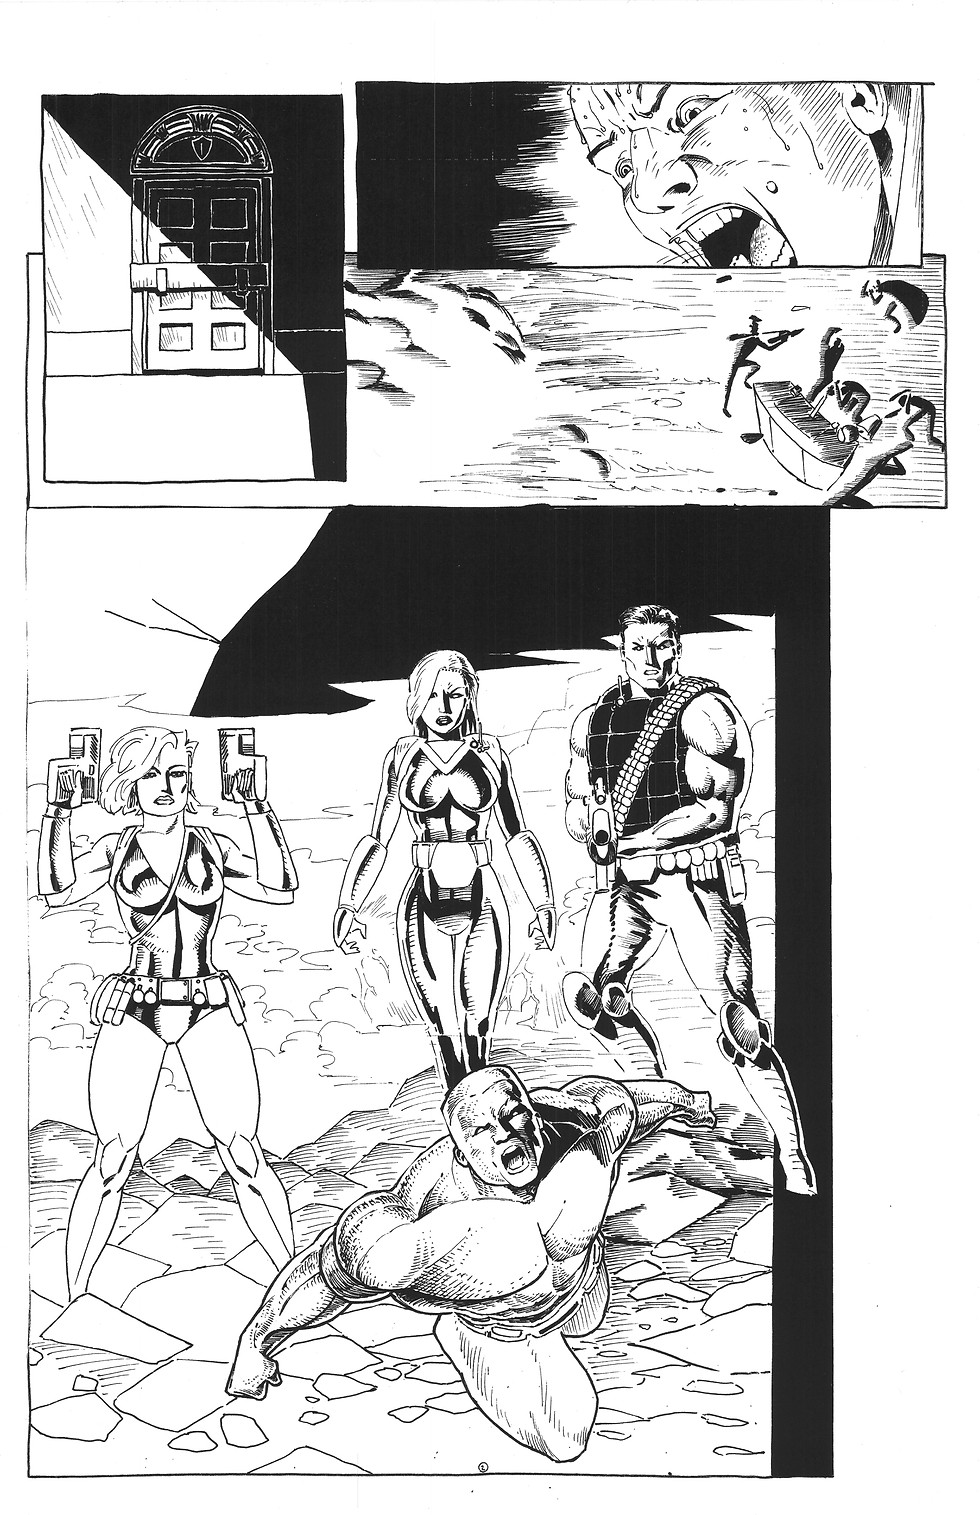 Live Wire Issue 1 (pages 2-14).jpg